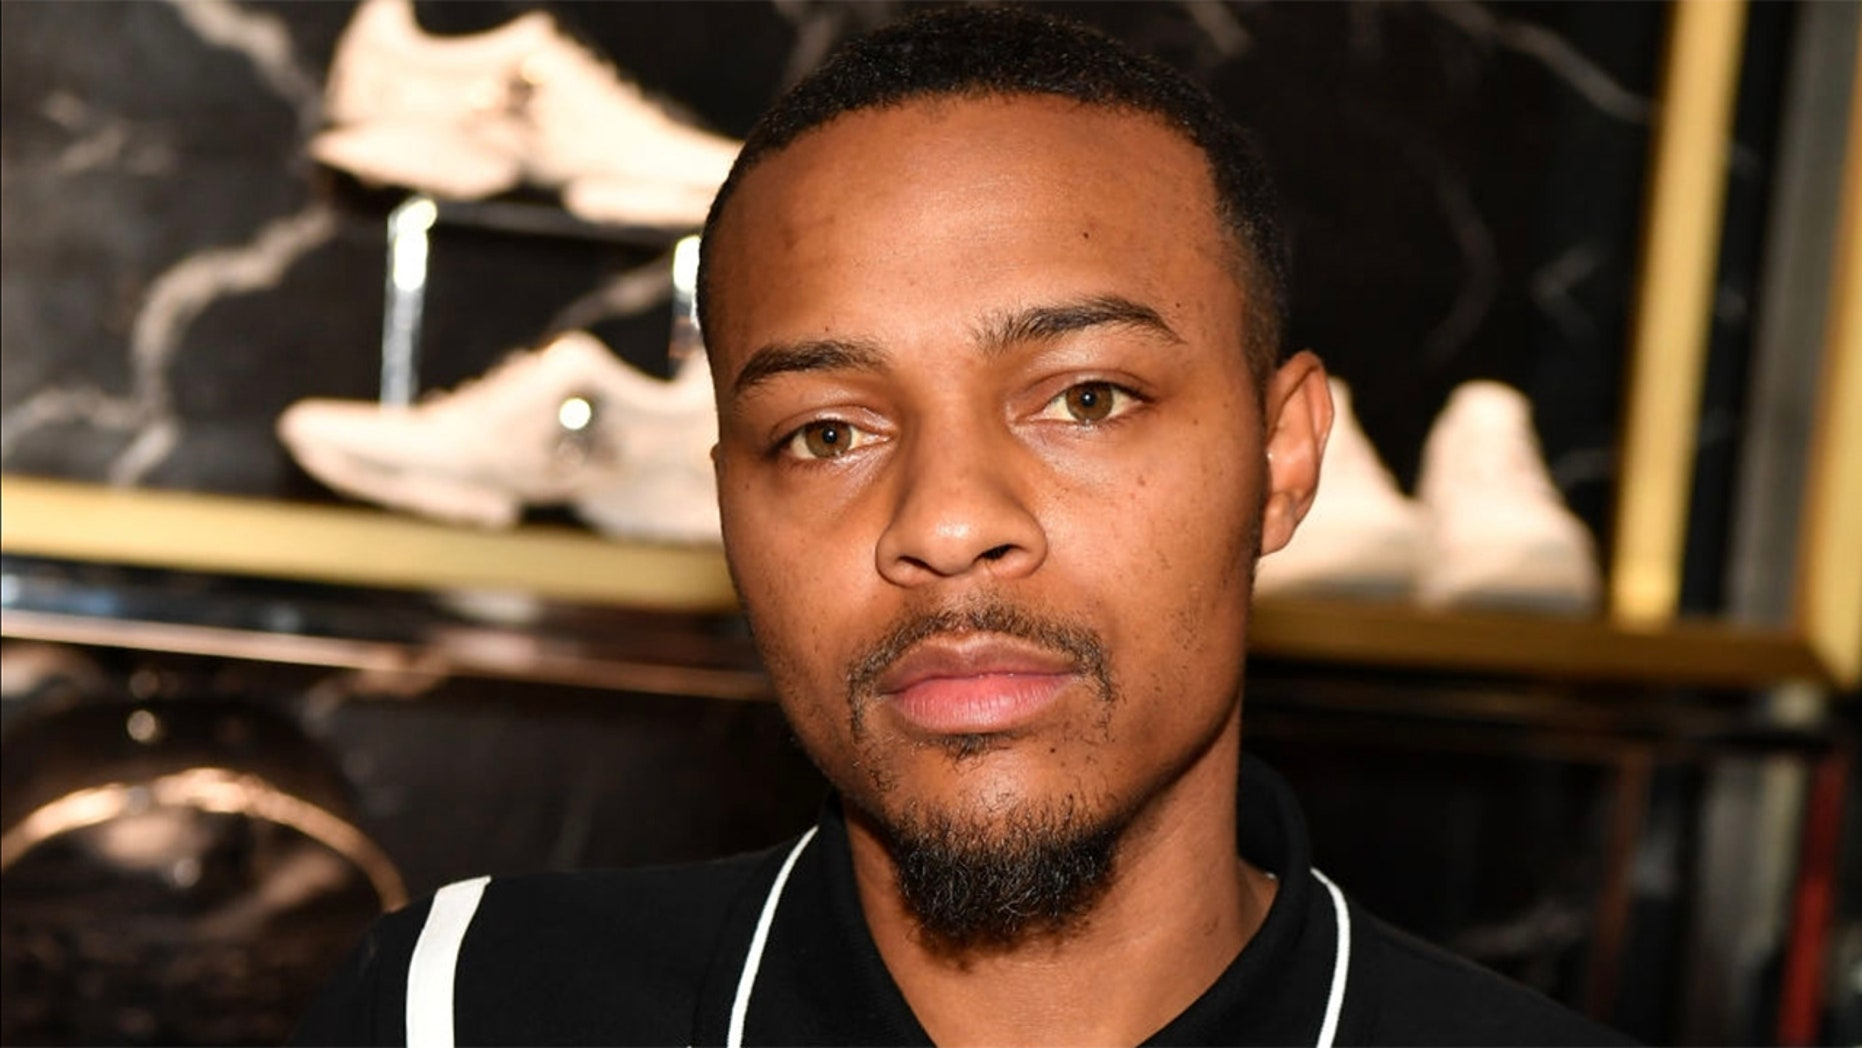 Bow Wow opened up about his battle with drug addiction.